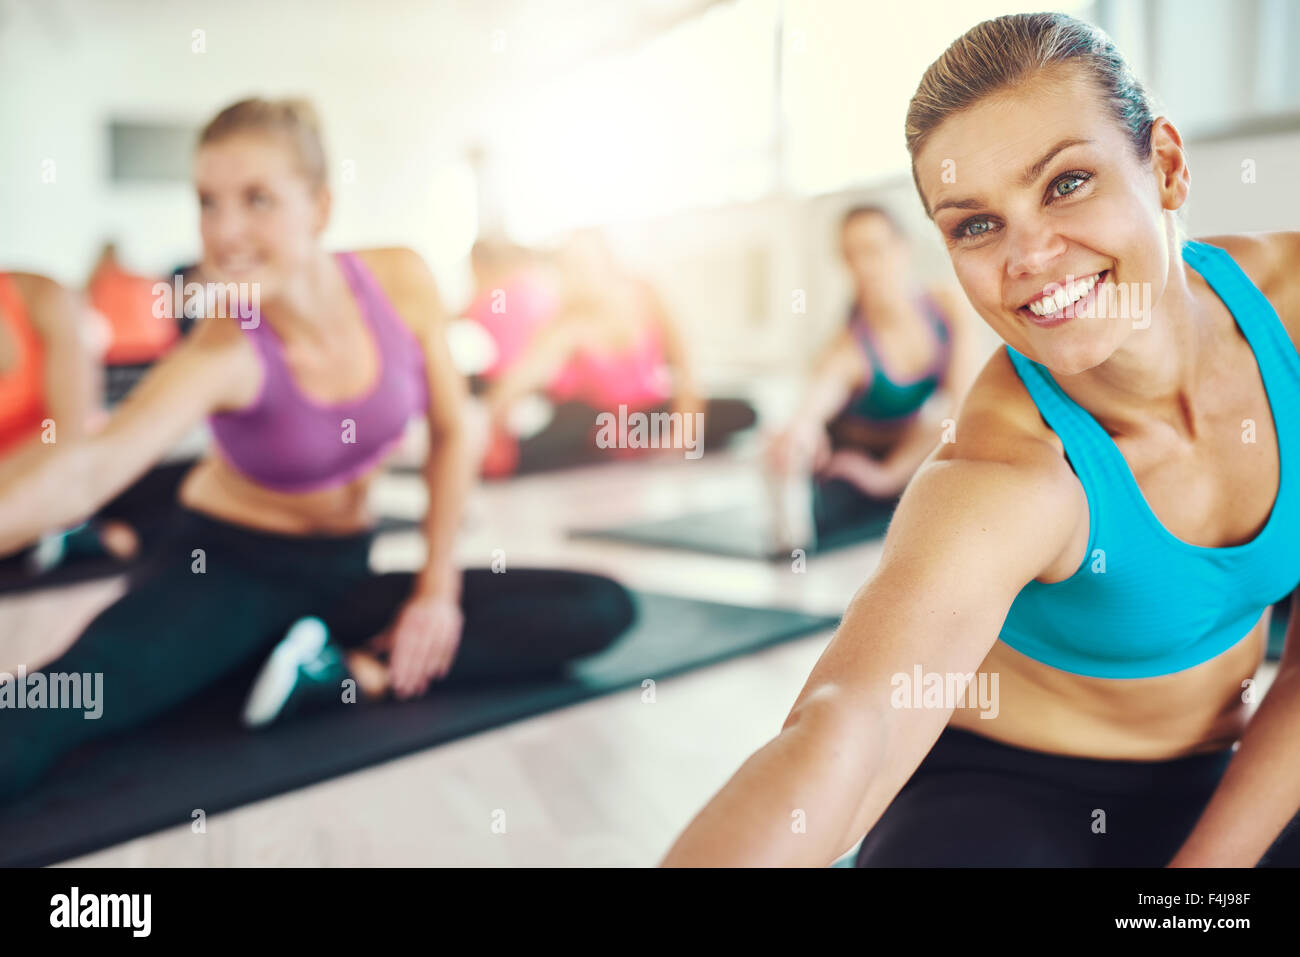 Fit and healthy woman in a fitness class, colorful sportswear, fitness, aerobics, sport concept - Stock Image